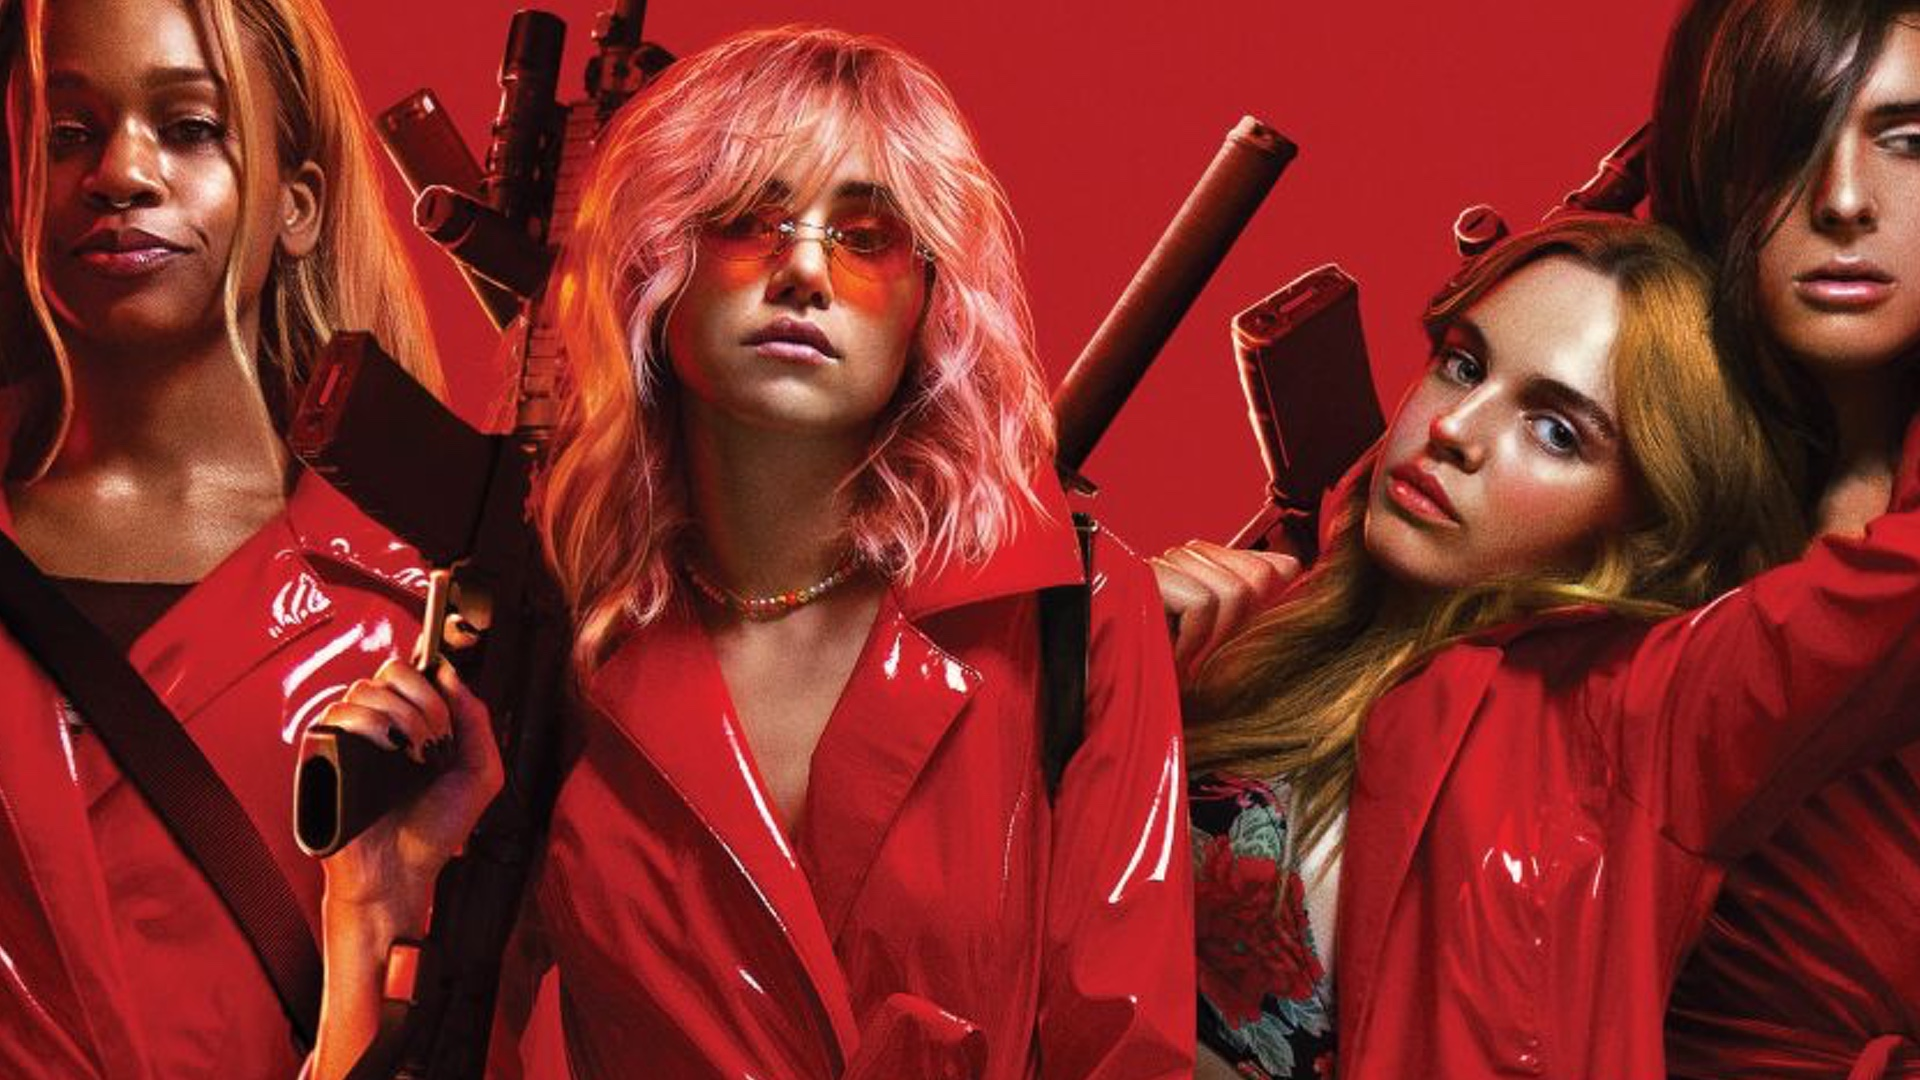 a full red band trailer has dropped for the jacked up thriller